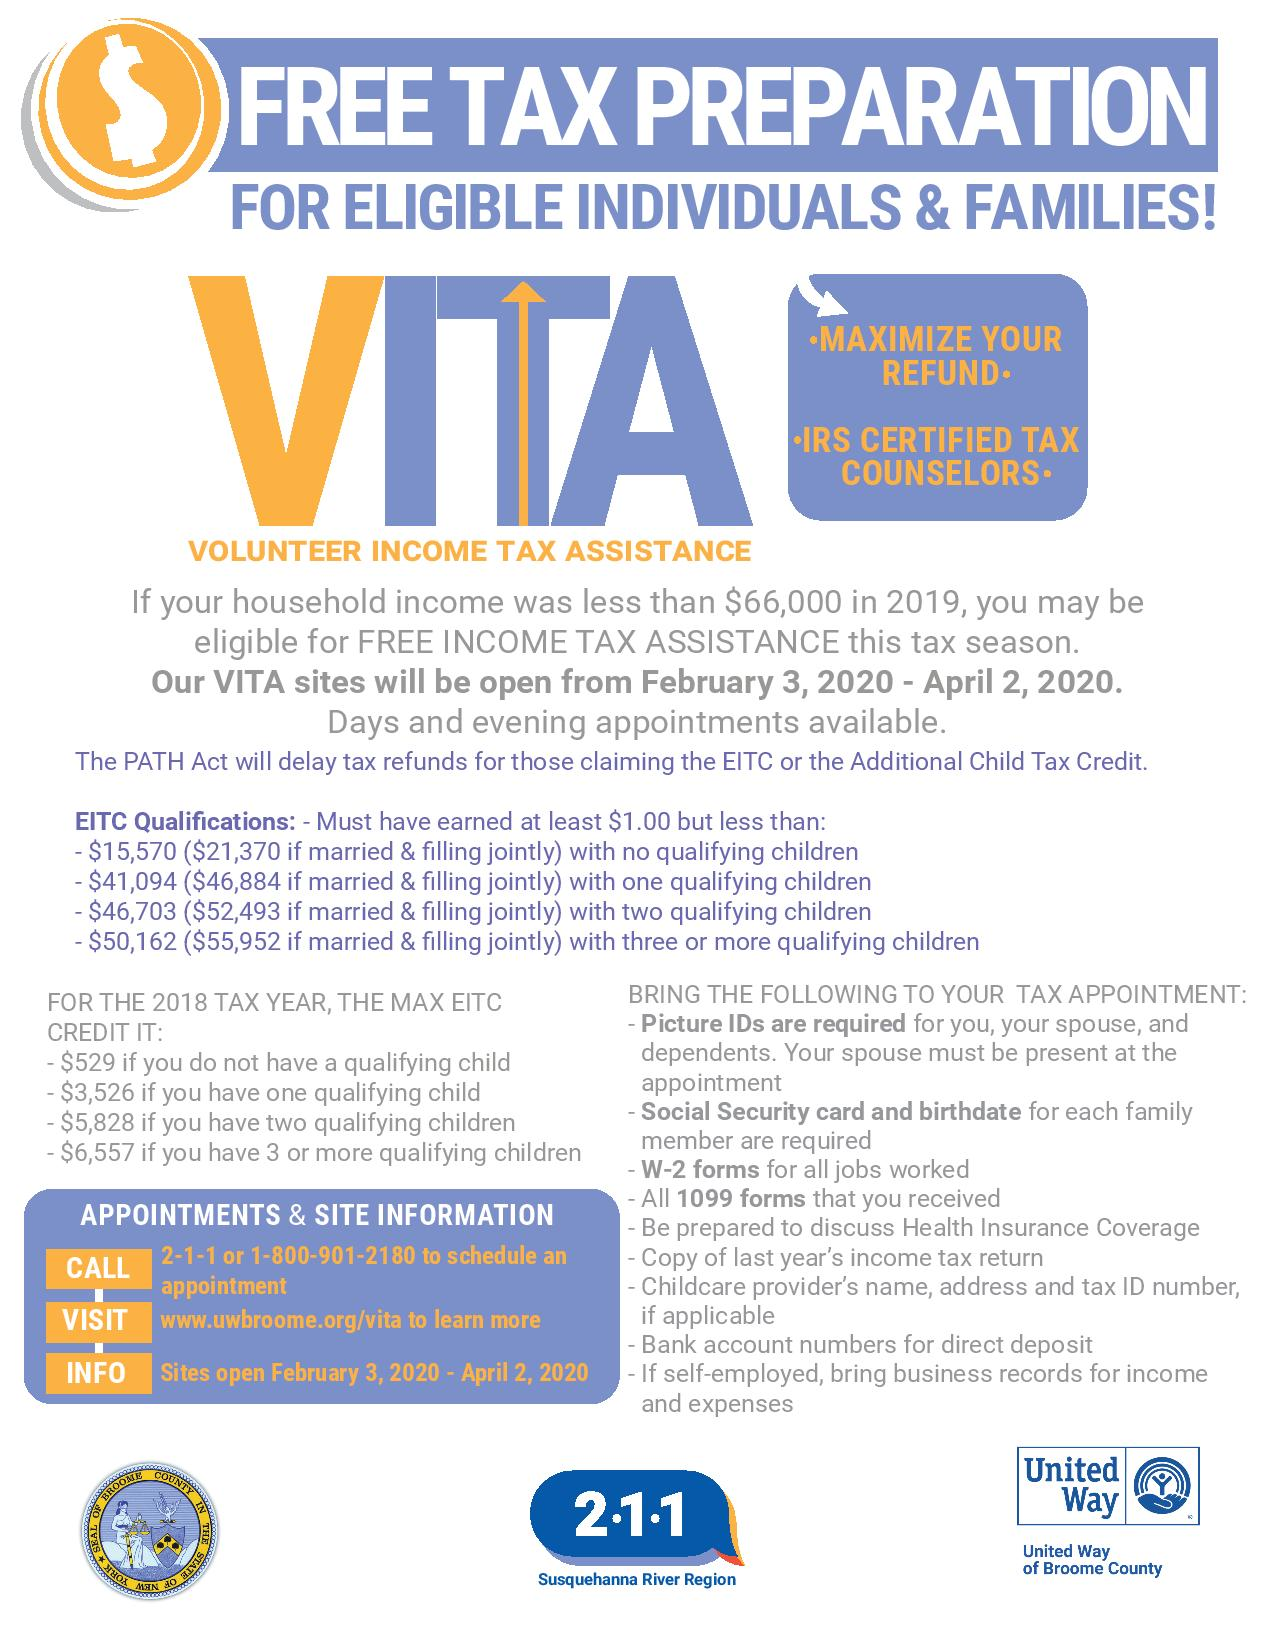 VITA - Volunteer Income Tax Assistance